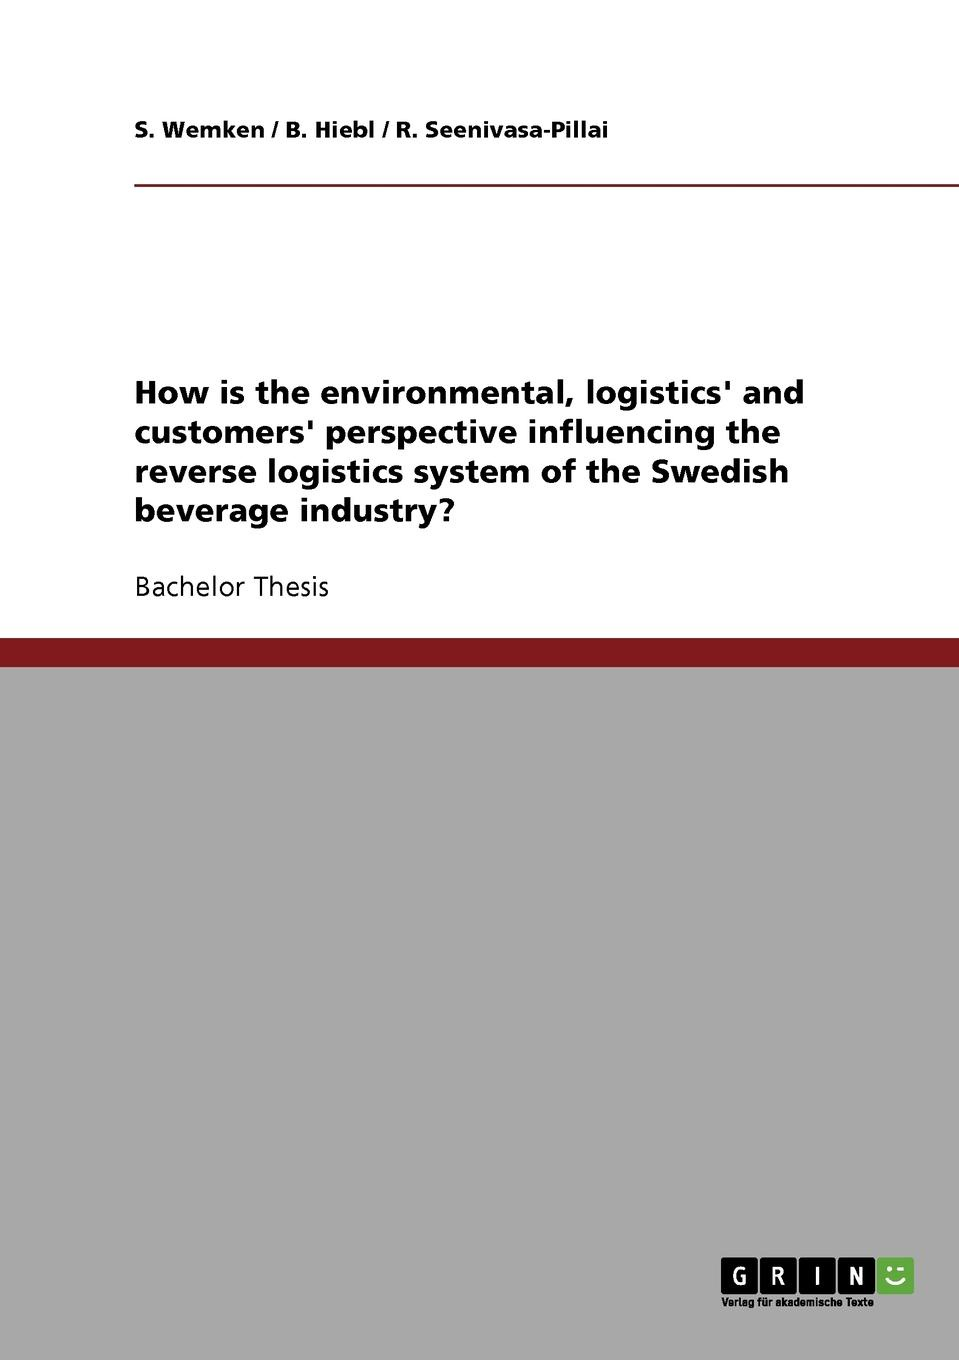 S. Wemken, B. Hiebl, R. Seenivasa-Pillai How is the environmental, logistics. and customers. perspective influencing the reverse logistics system of the Swedish beverage industry. business logistics management